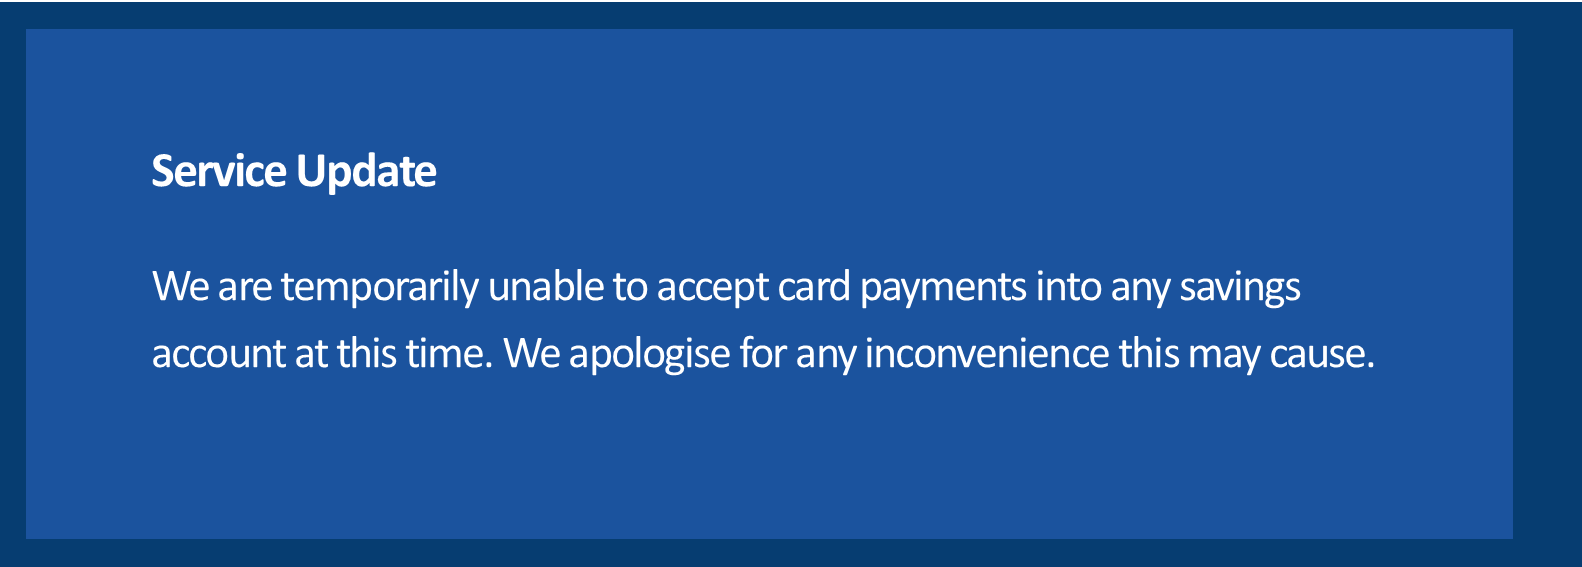 Unable to access card payments to savings